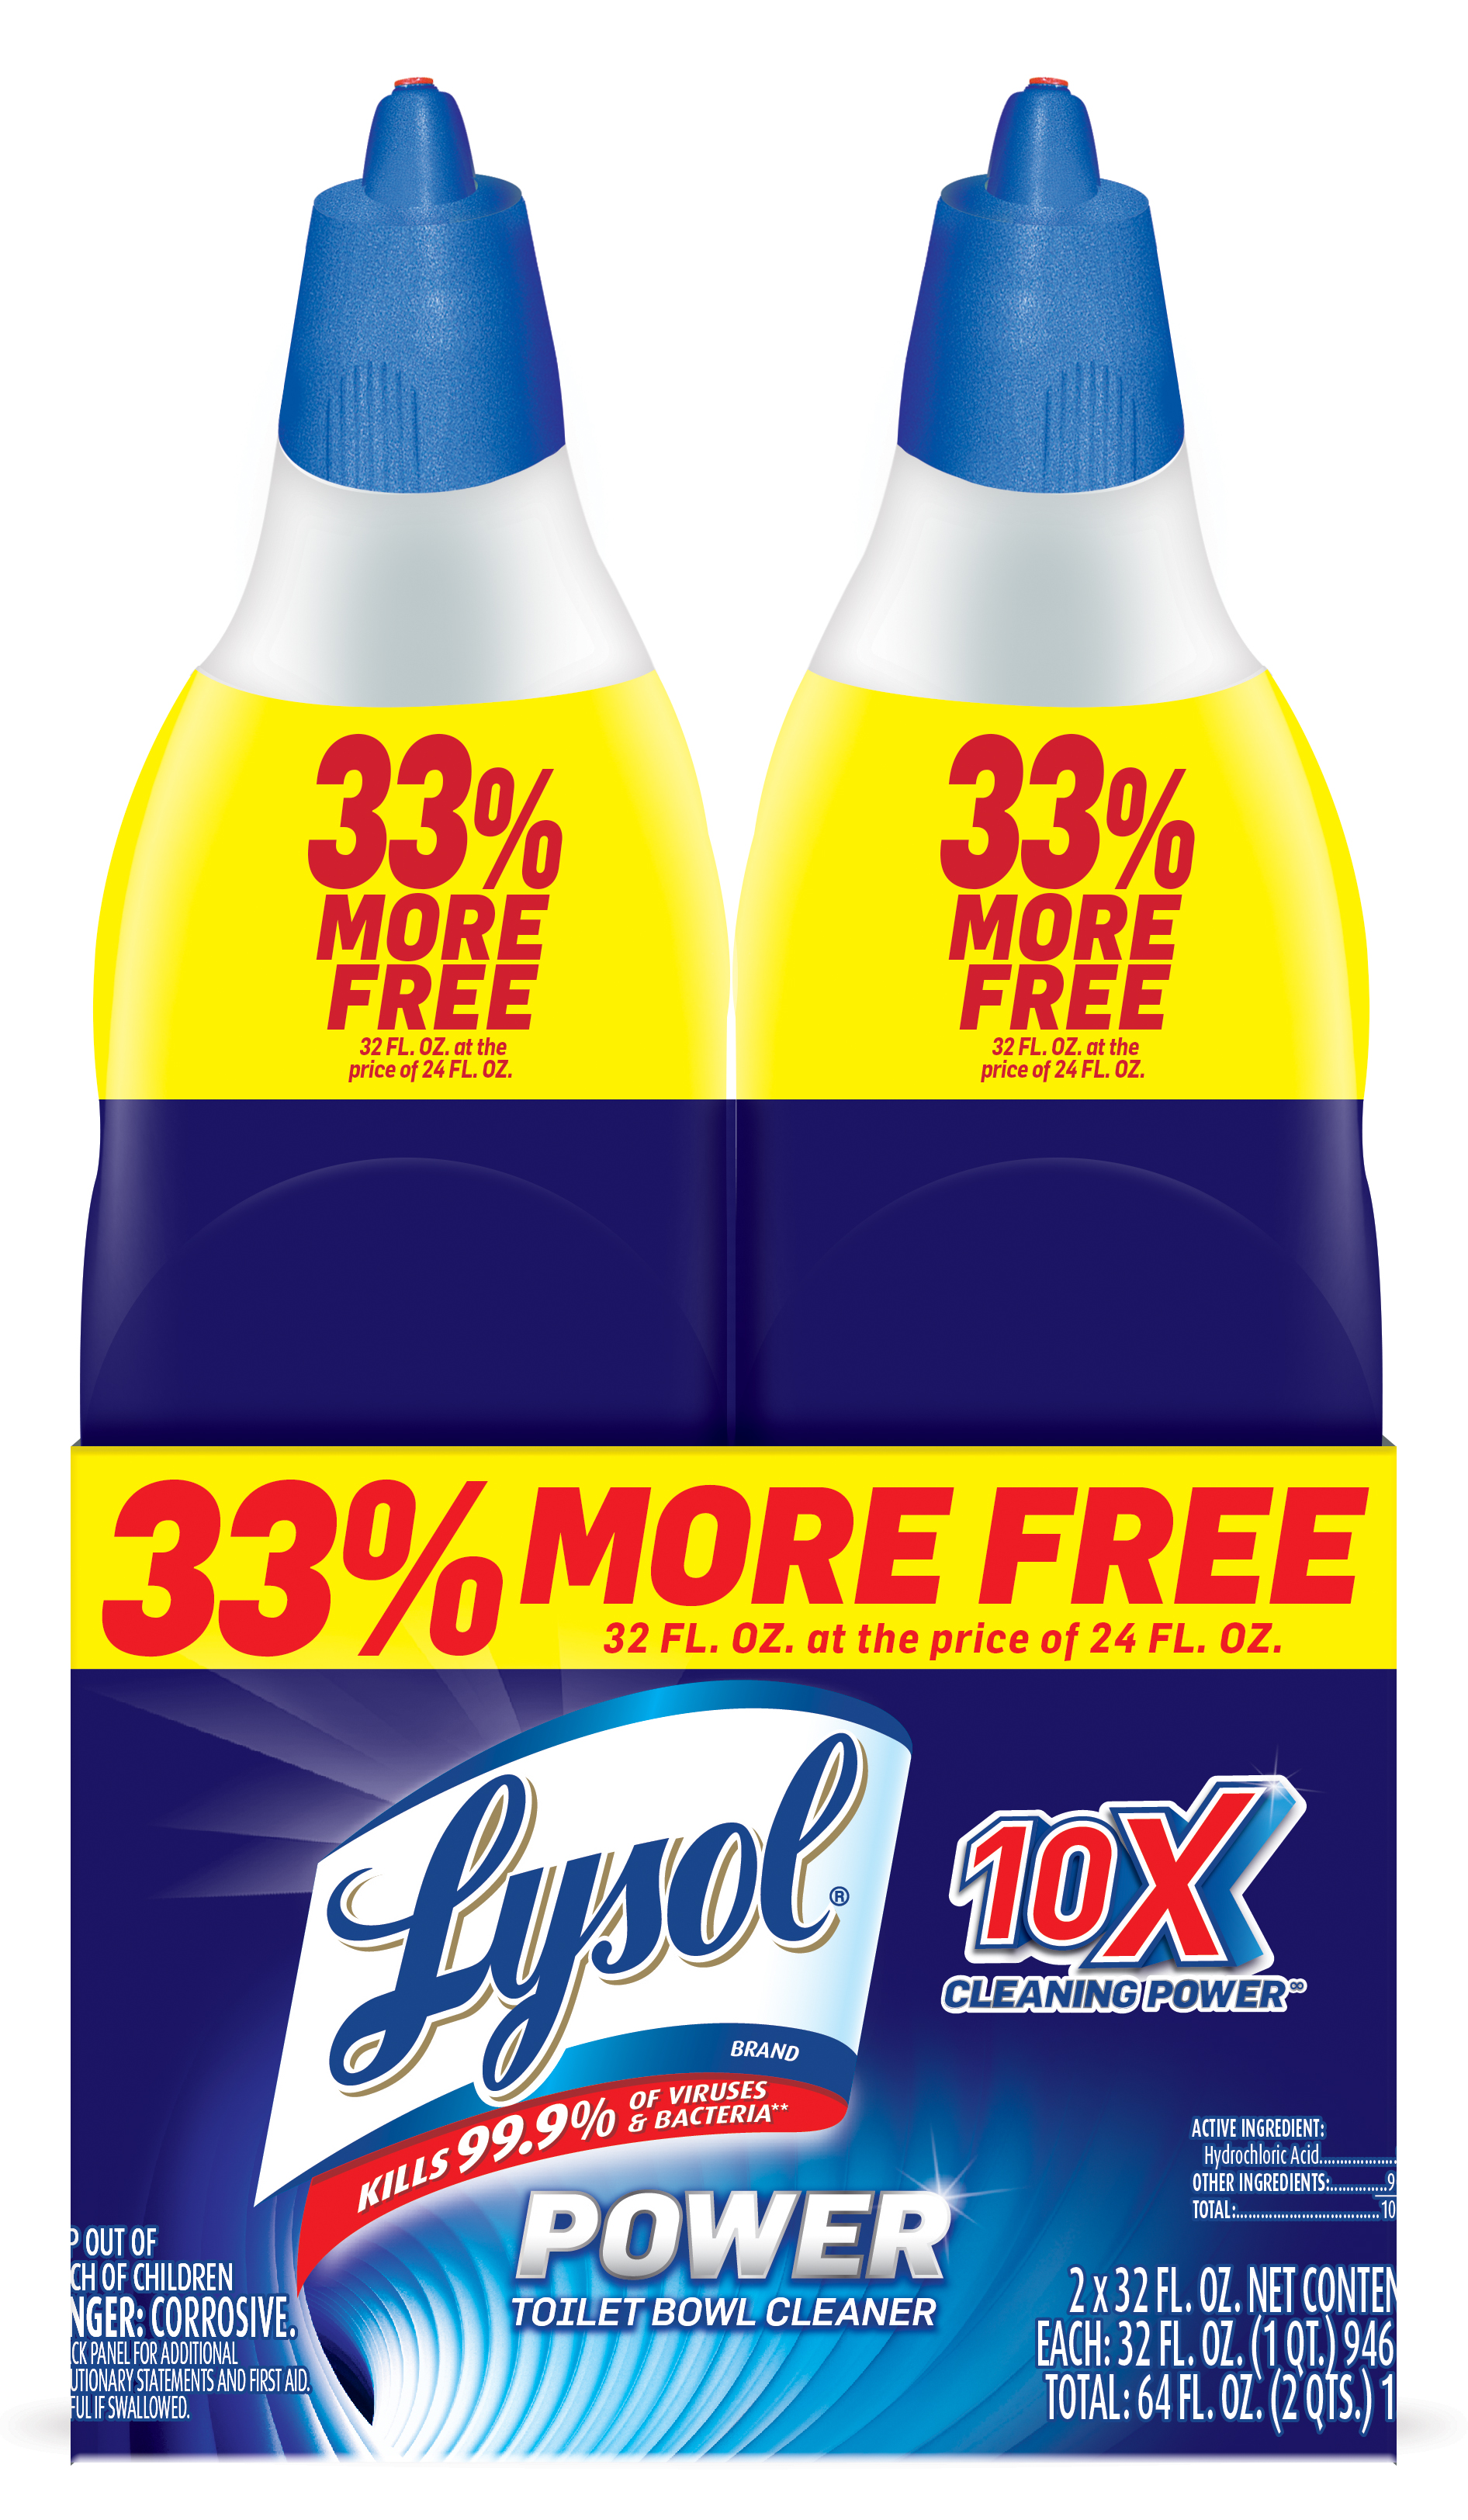 Lysol Power Toilet Bowl Cleaner, 64oz (2X32oz), 10X Cleaning Power